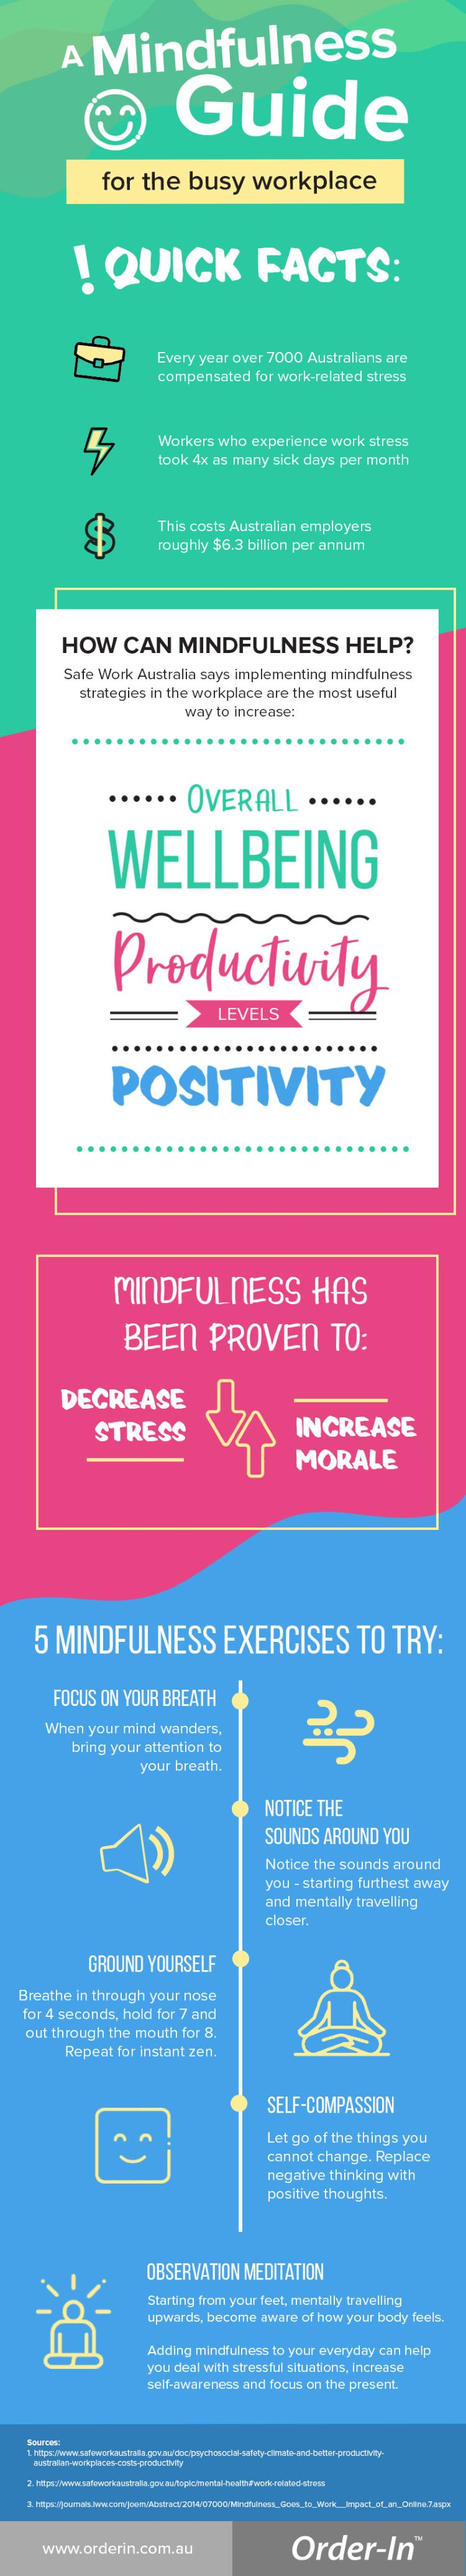 An infographic guide to mindfulness in the workplace